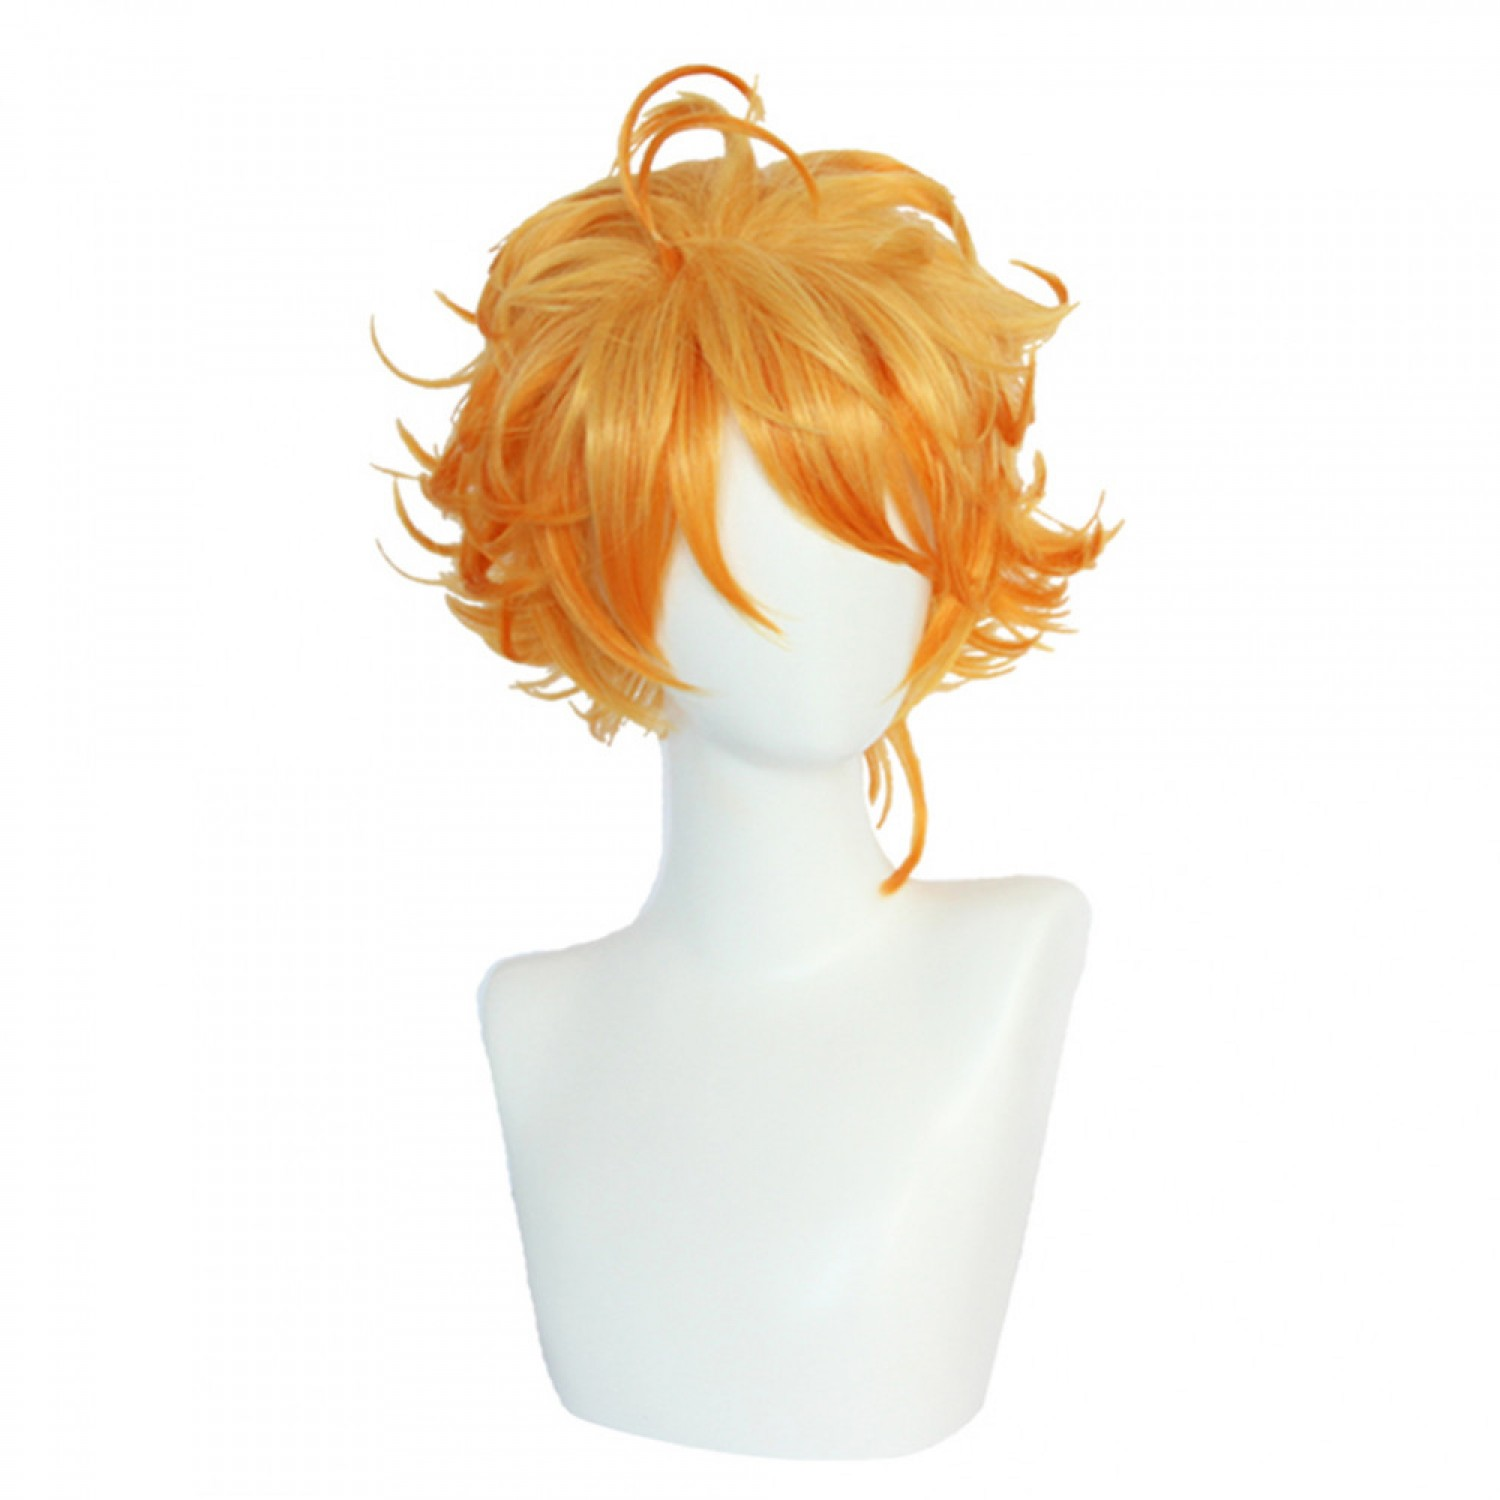 The Promised Neverland Emma Cosplay Hair Wig